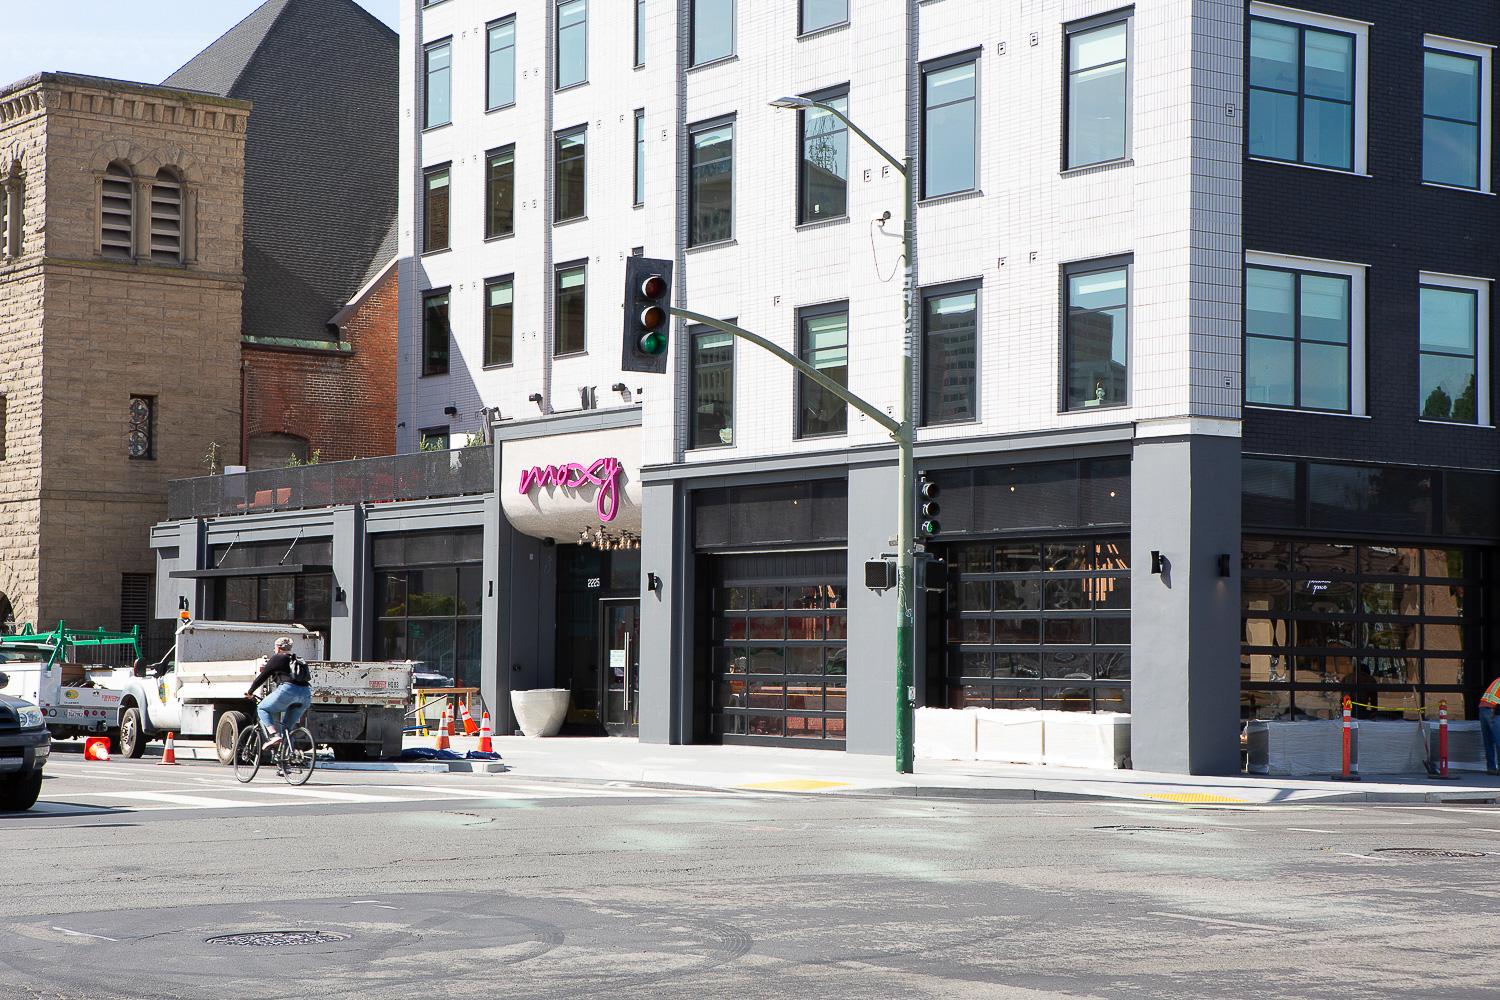 Moxy Hotel at 2225 Telegraph Avenue entrance, image by Andrew Campbell Nelson